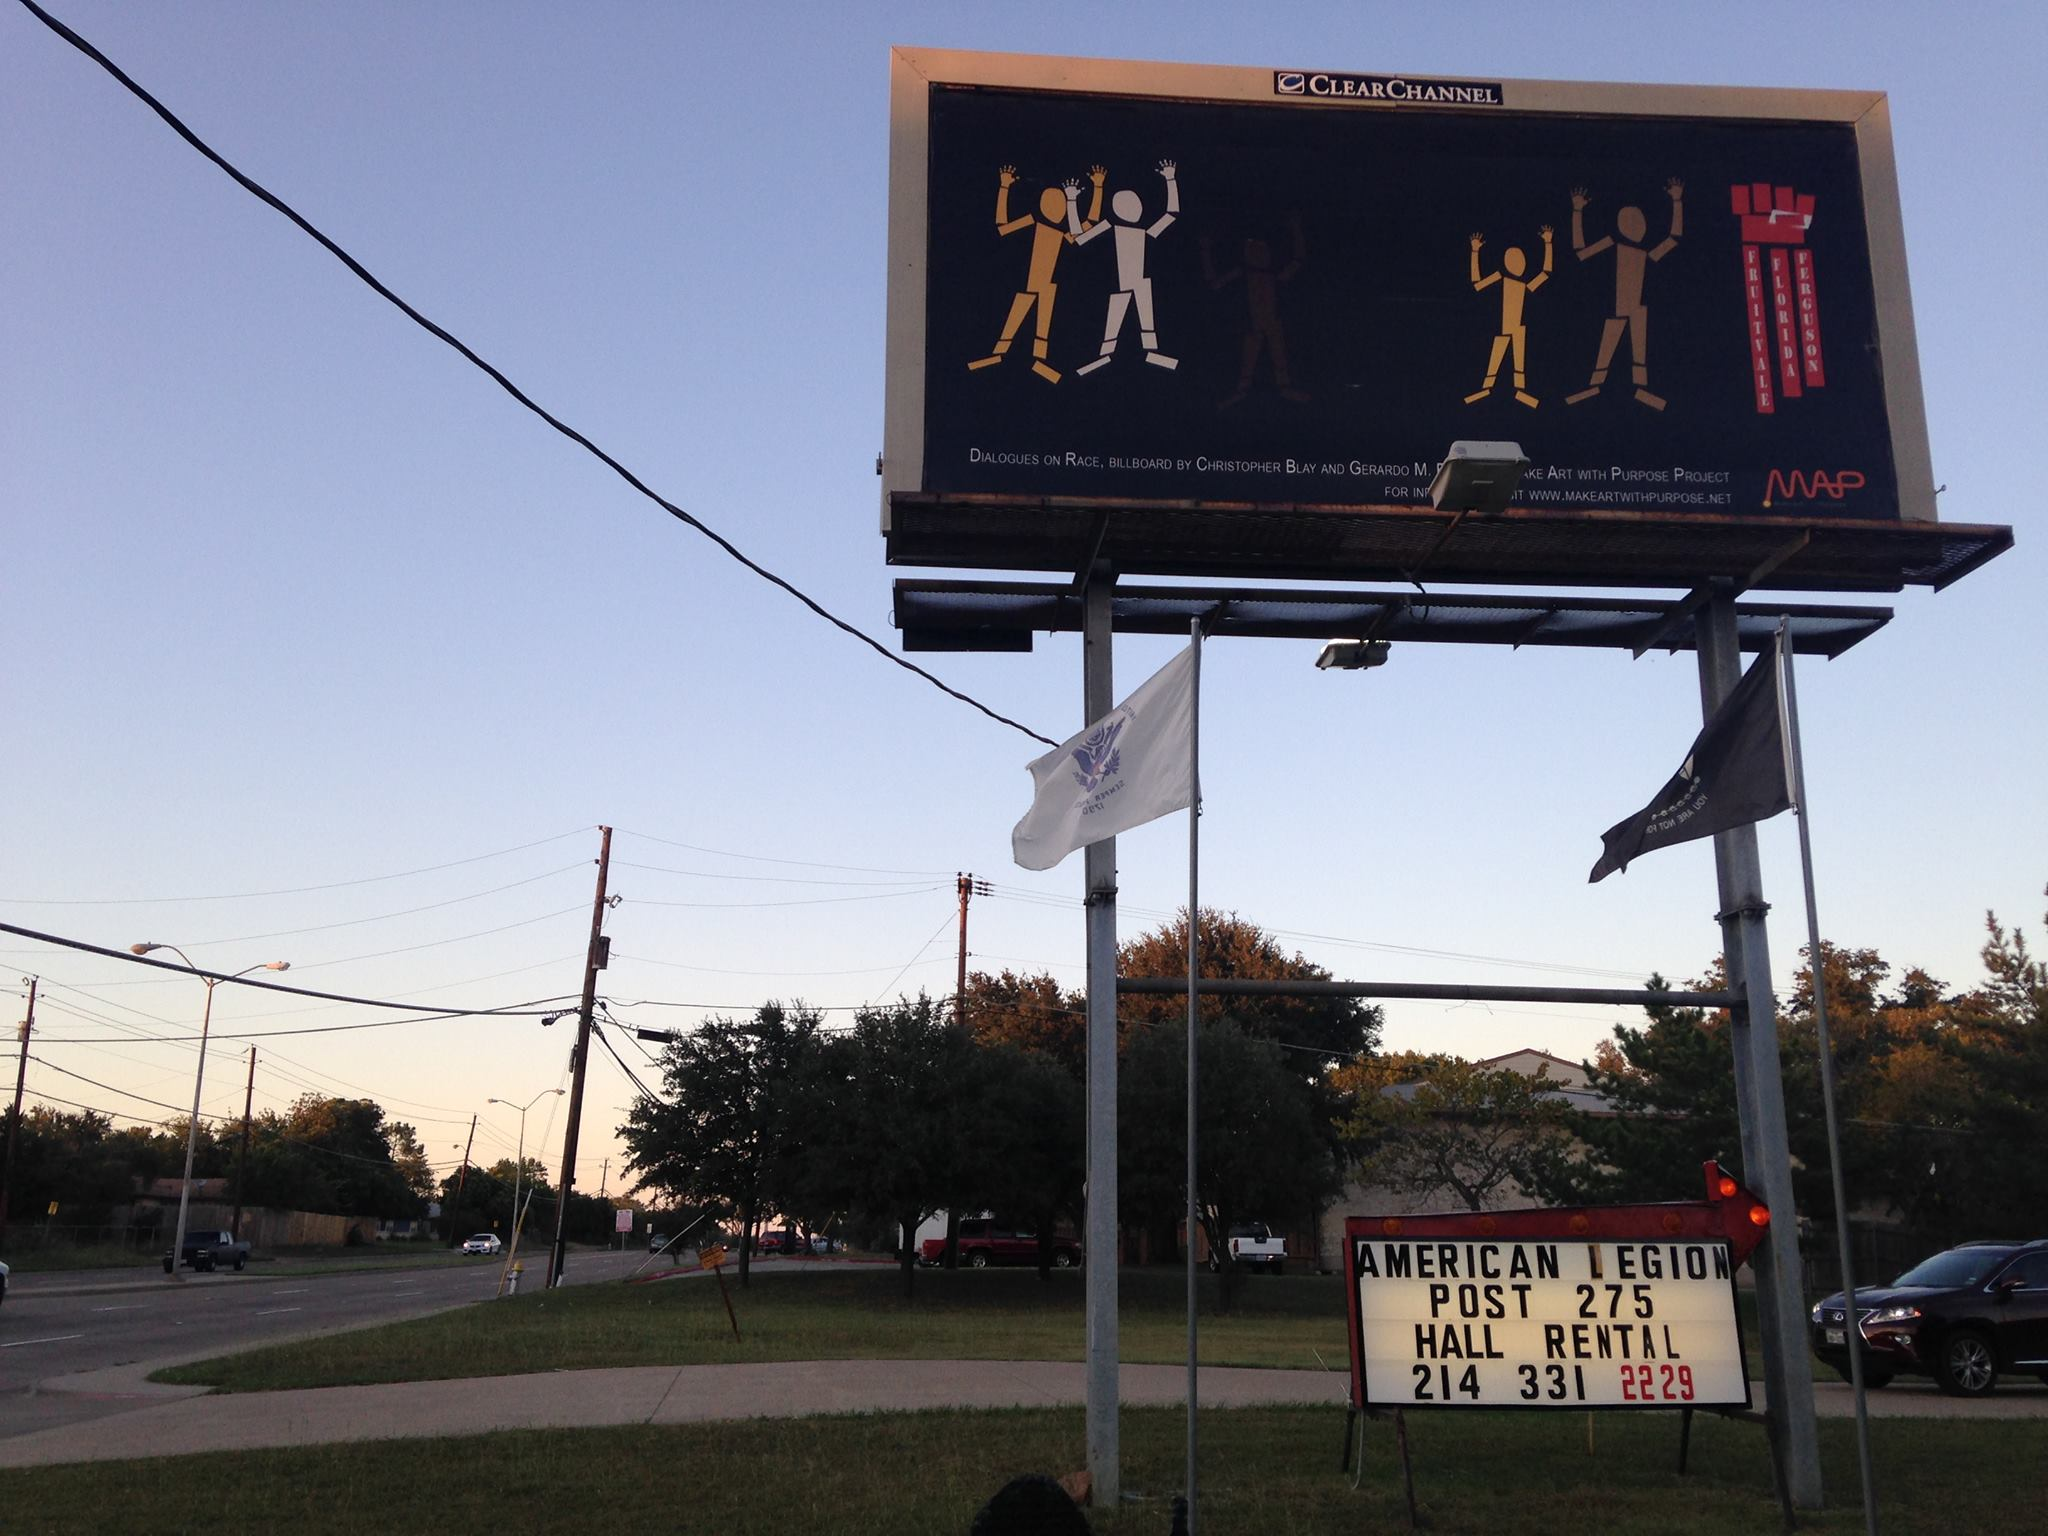 Billboard art spurs discussion on racial equity